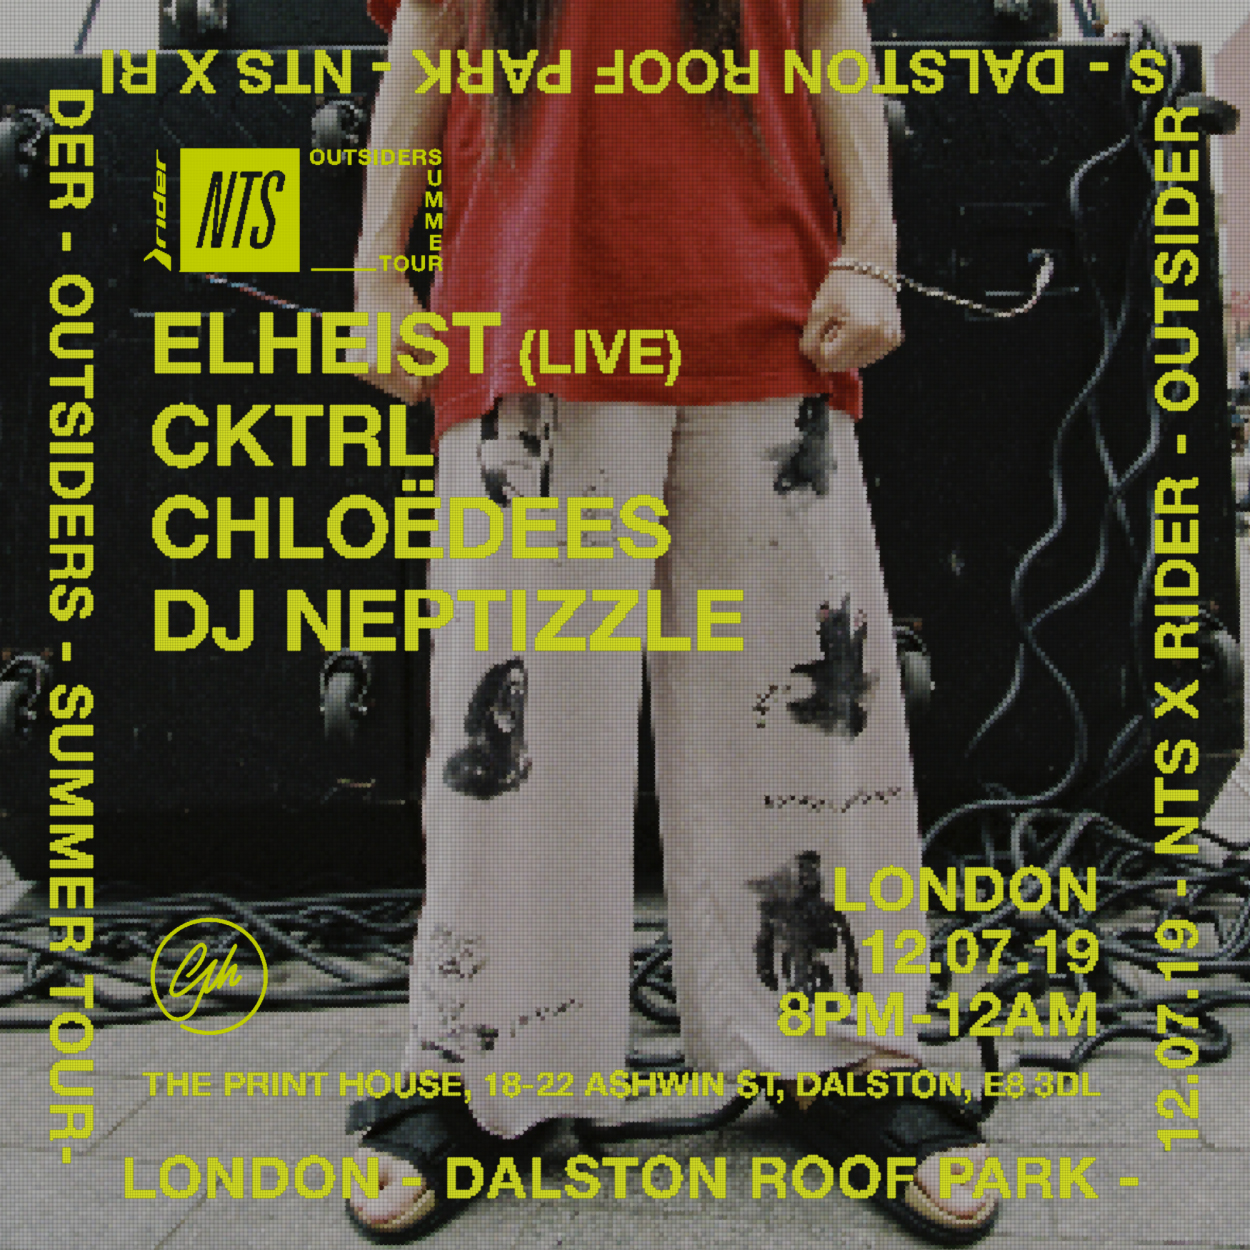 Square Still - Event - NTS x Rider Outsiders Tour - Elheist, Chloedees, DJ Neptizzle @ Dalston Roof Park.jpg